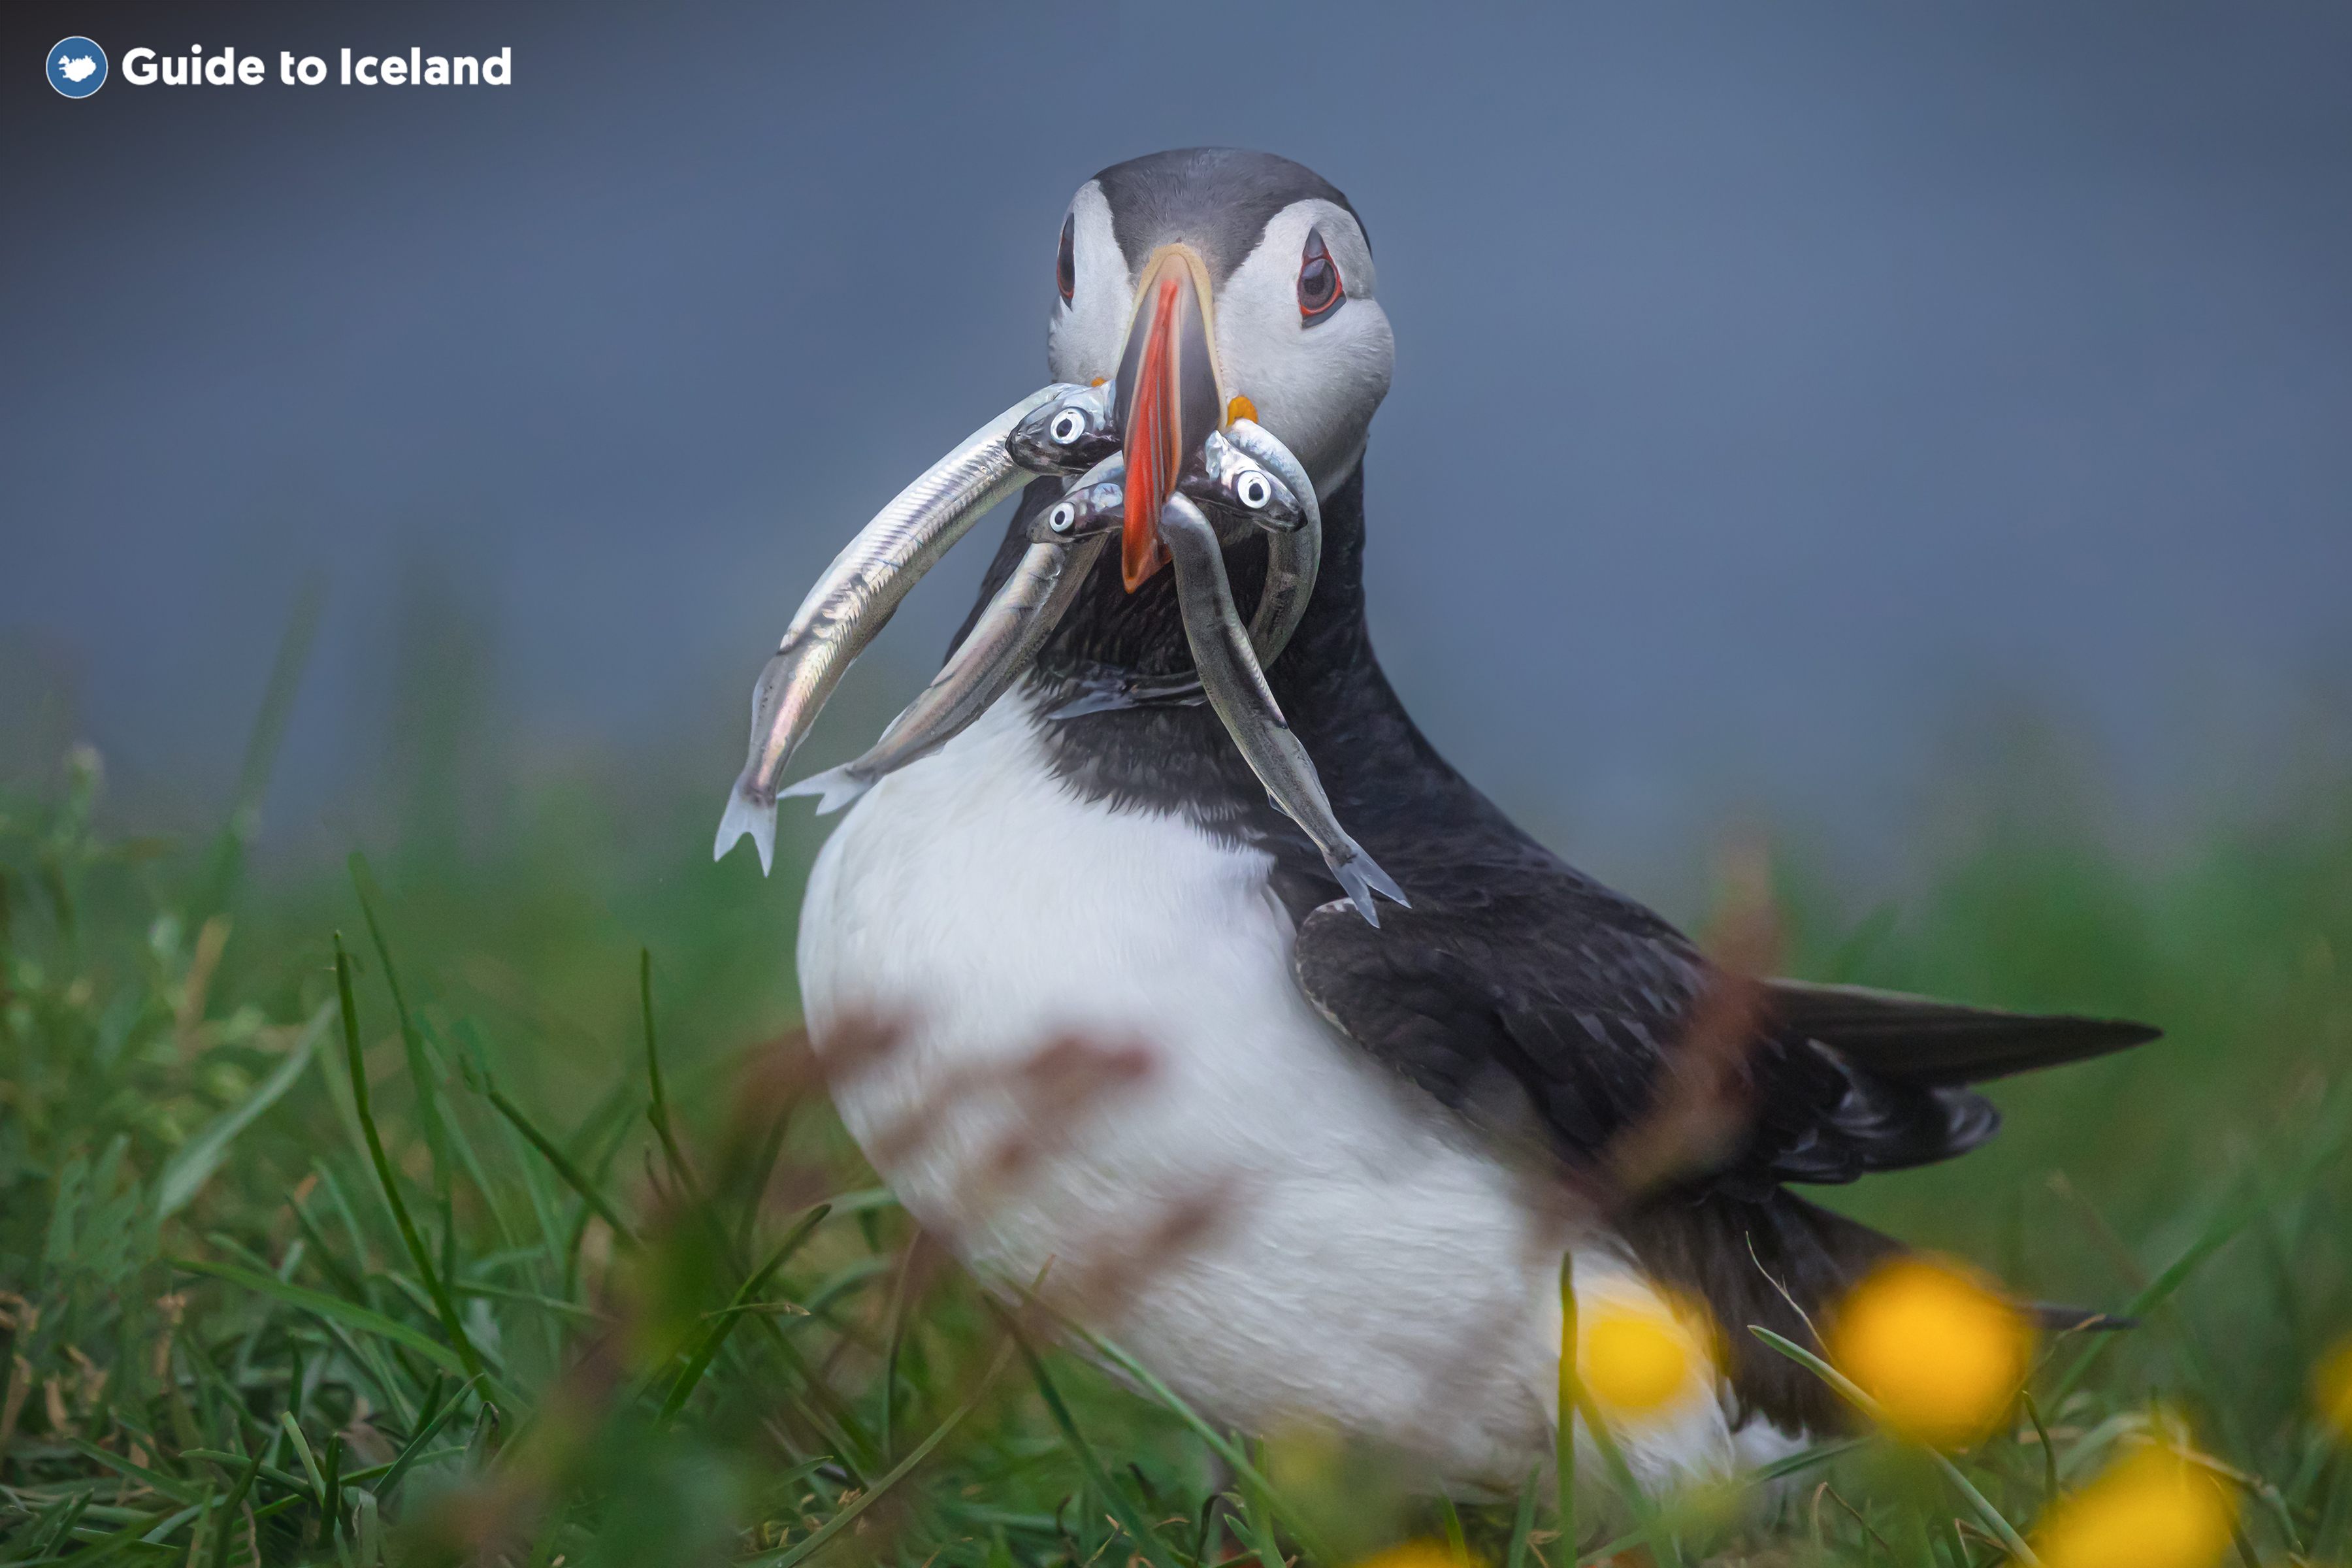 The tranquil Flatey island in West Iceland is home to puffins.